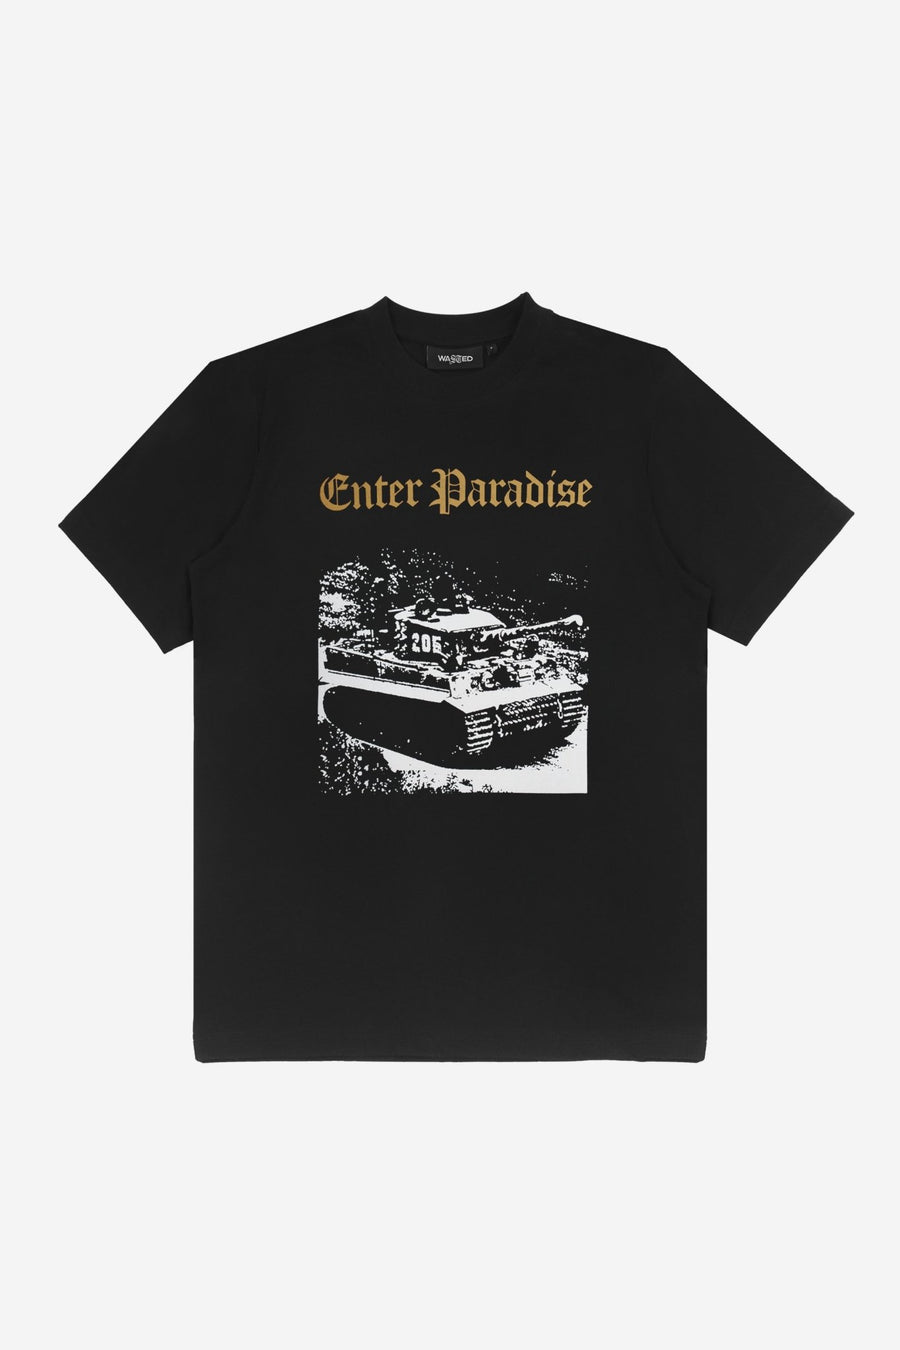 T-shirt Enter Paradise Noir - WASTED PARIS